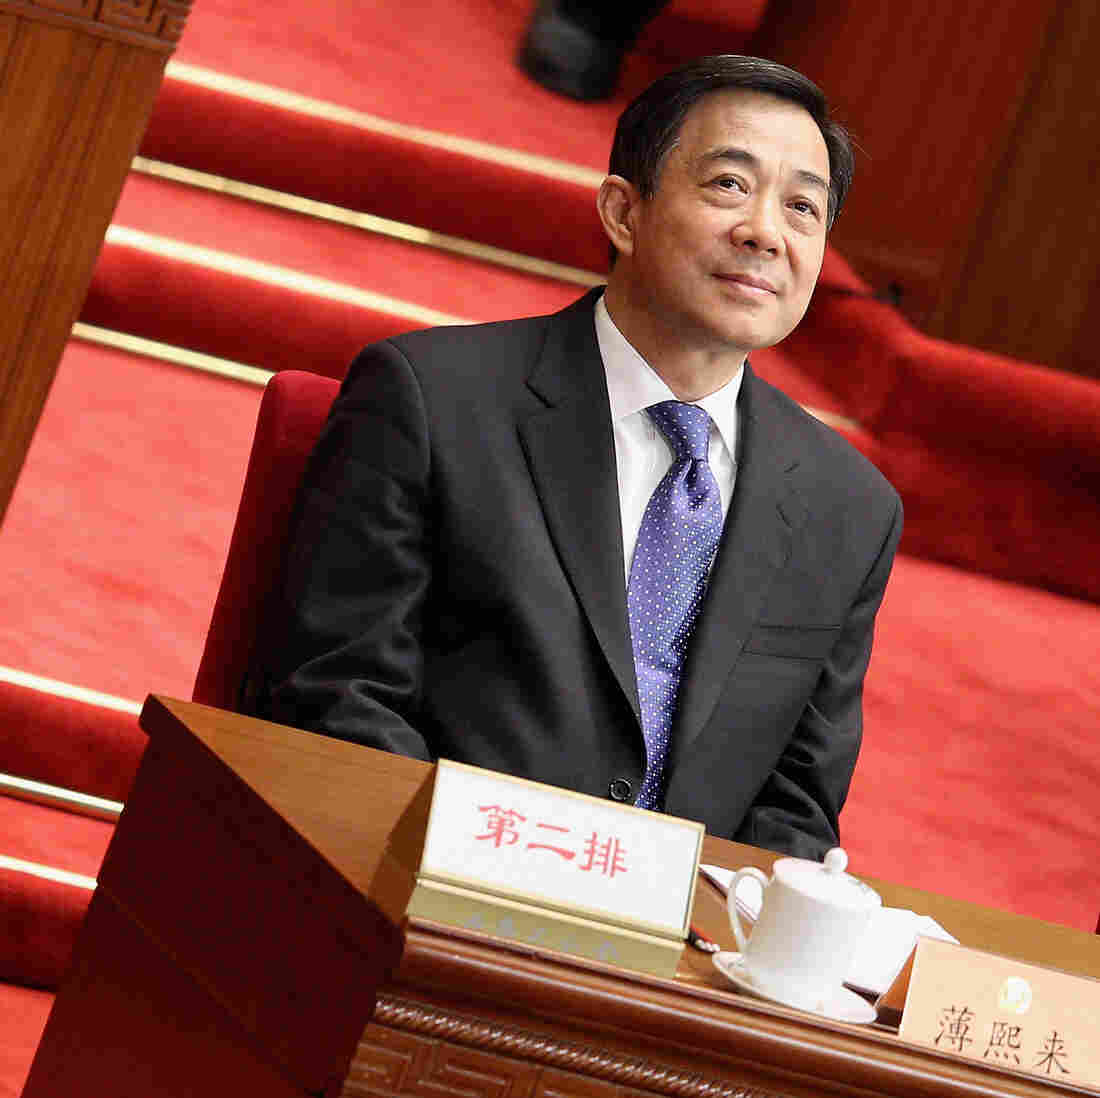 From A 'Death' To A Crisis, Tracing China's Bo Xilai Scandal